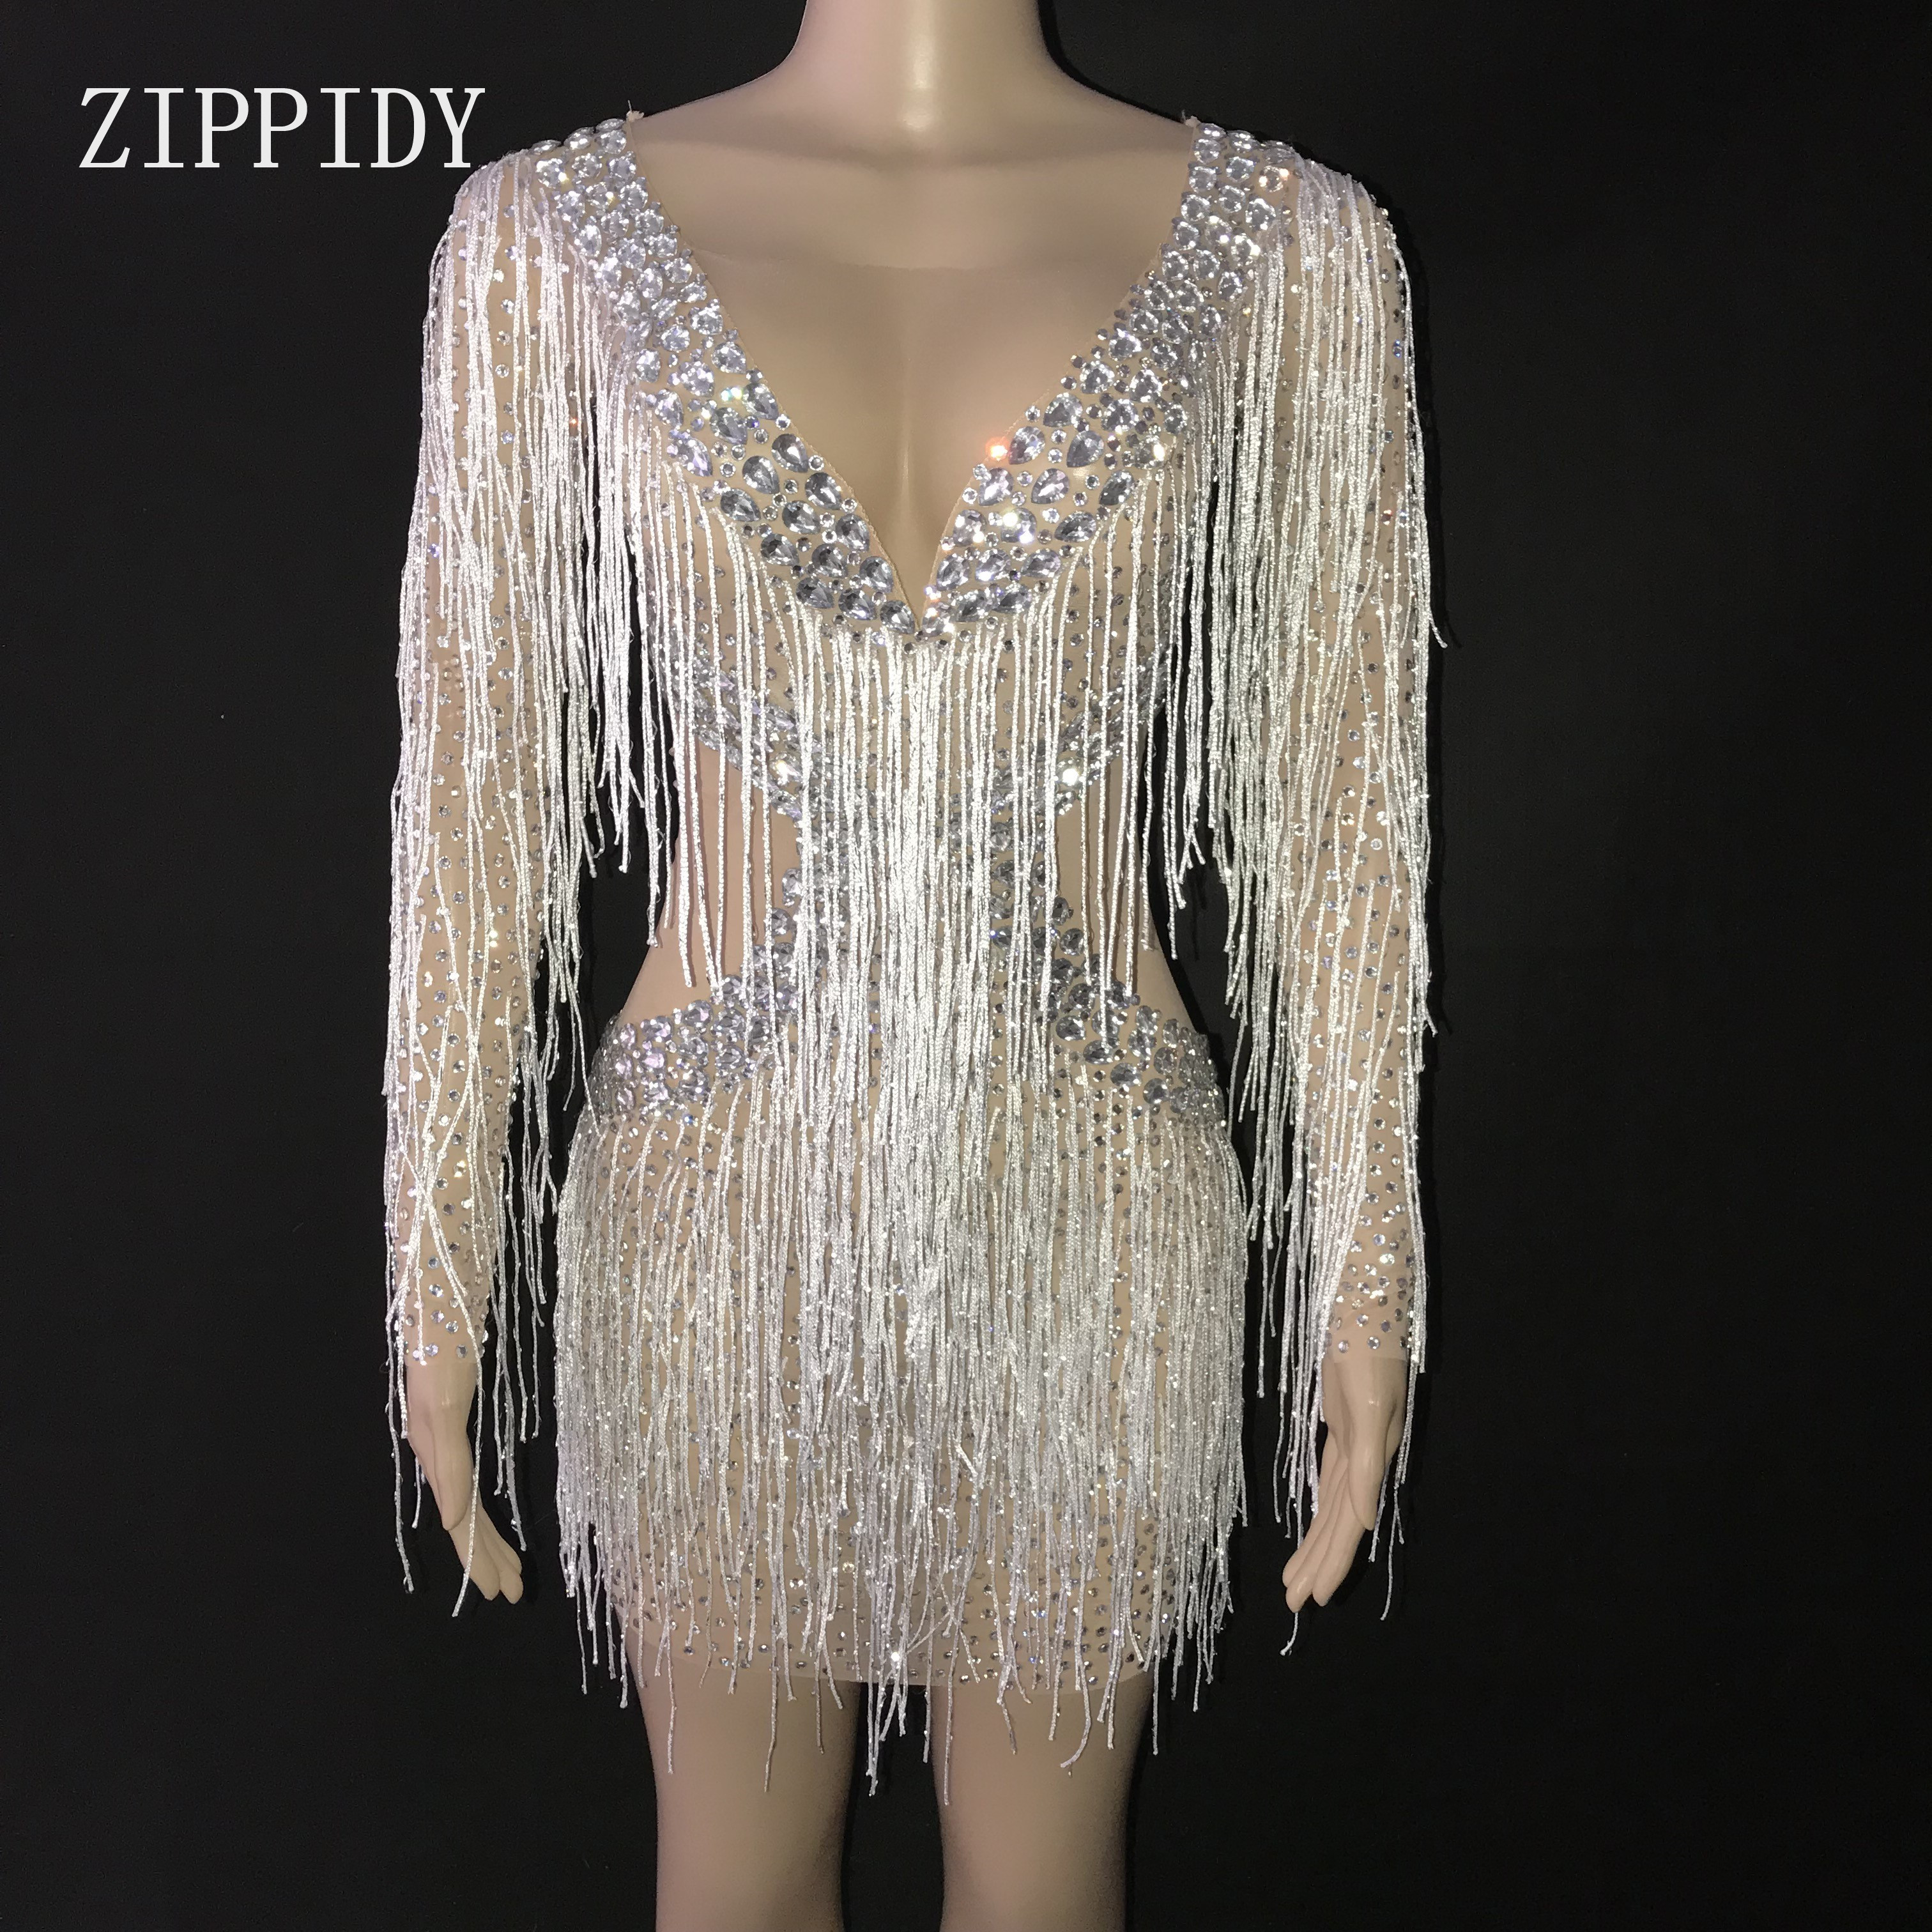 Sparkly Silver Rhinestones White Fringes Mesh Dress See Through Dance Outfit Women Birthday Celebrate Outfit Tassels Dress